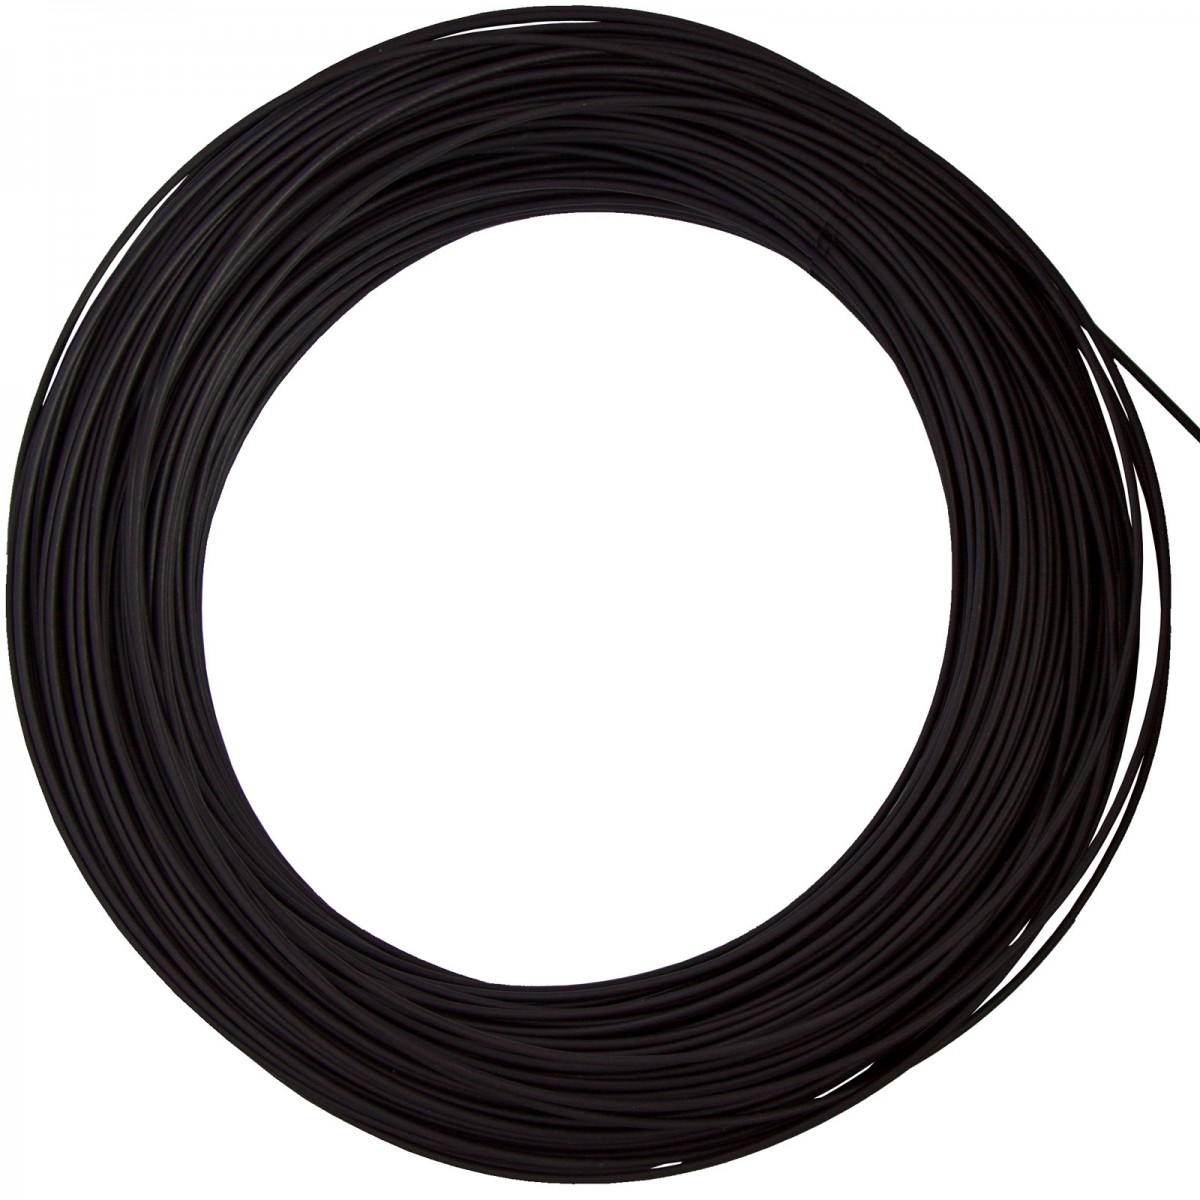 Speed rope coated wire